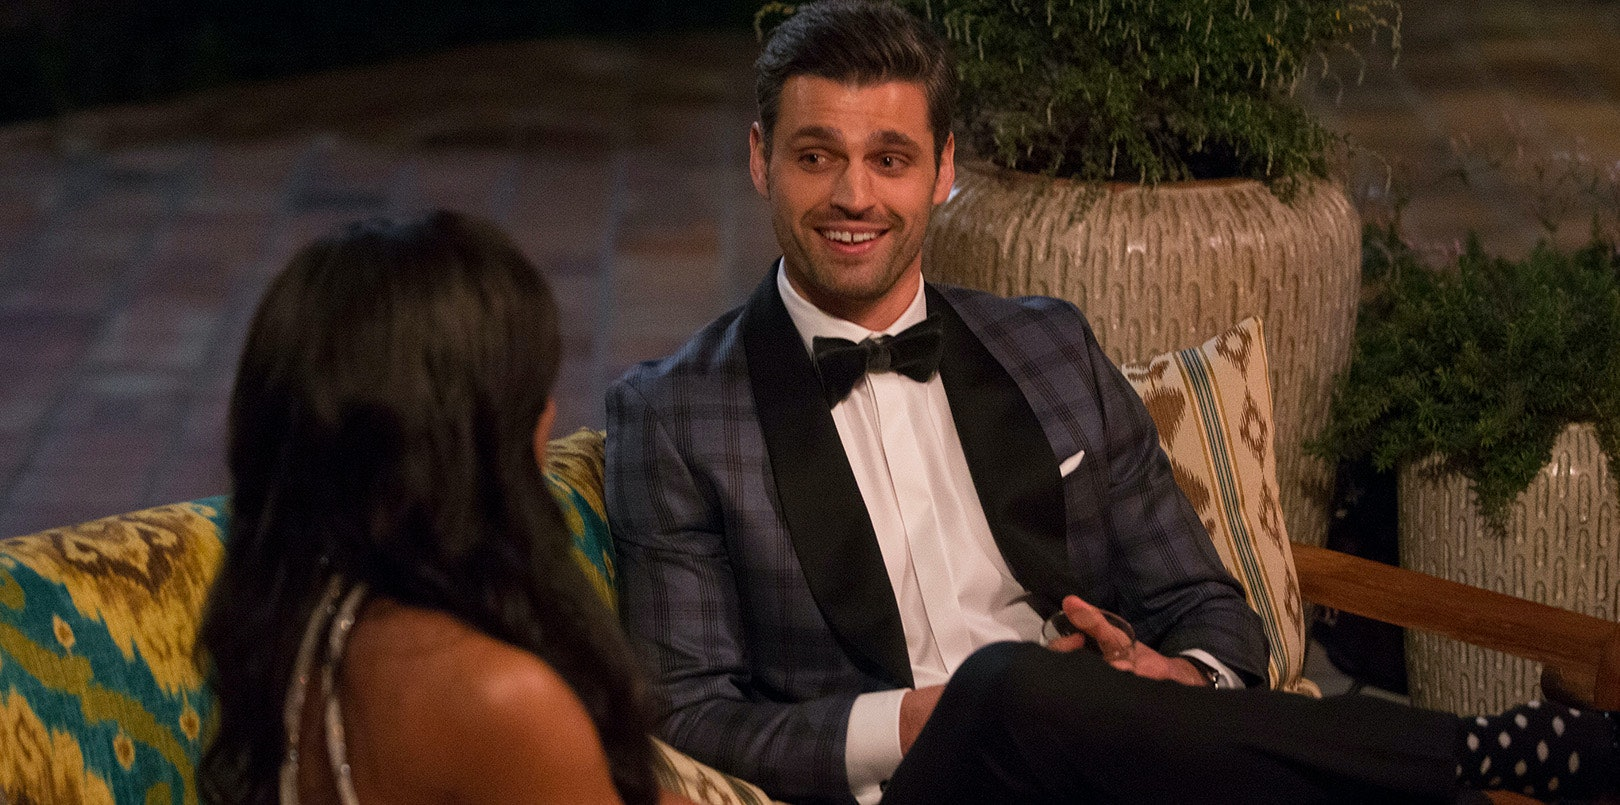 The Signs That Peter Rachel Get Engaged On Bachelorette Will Have You Naming Their Imaginary Dogs